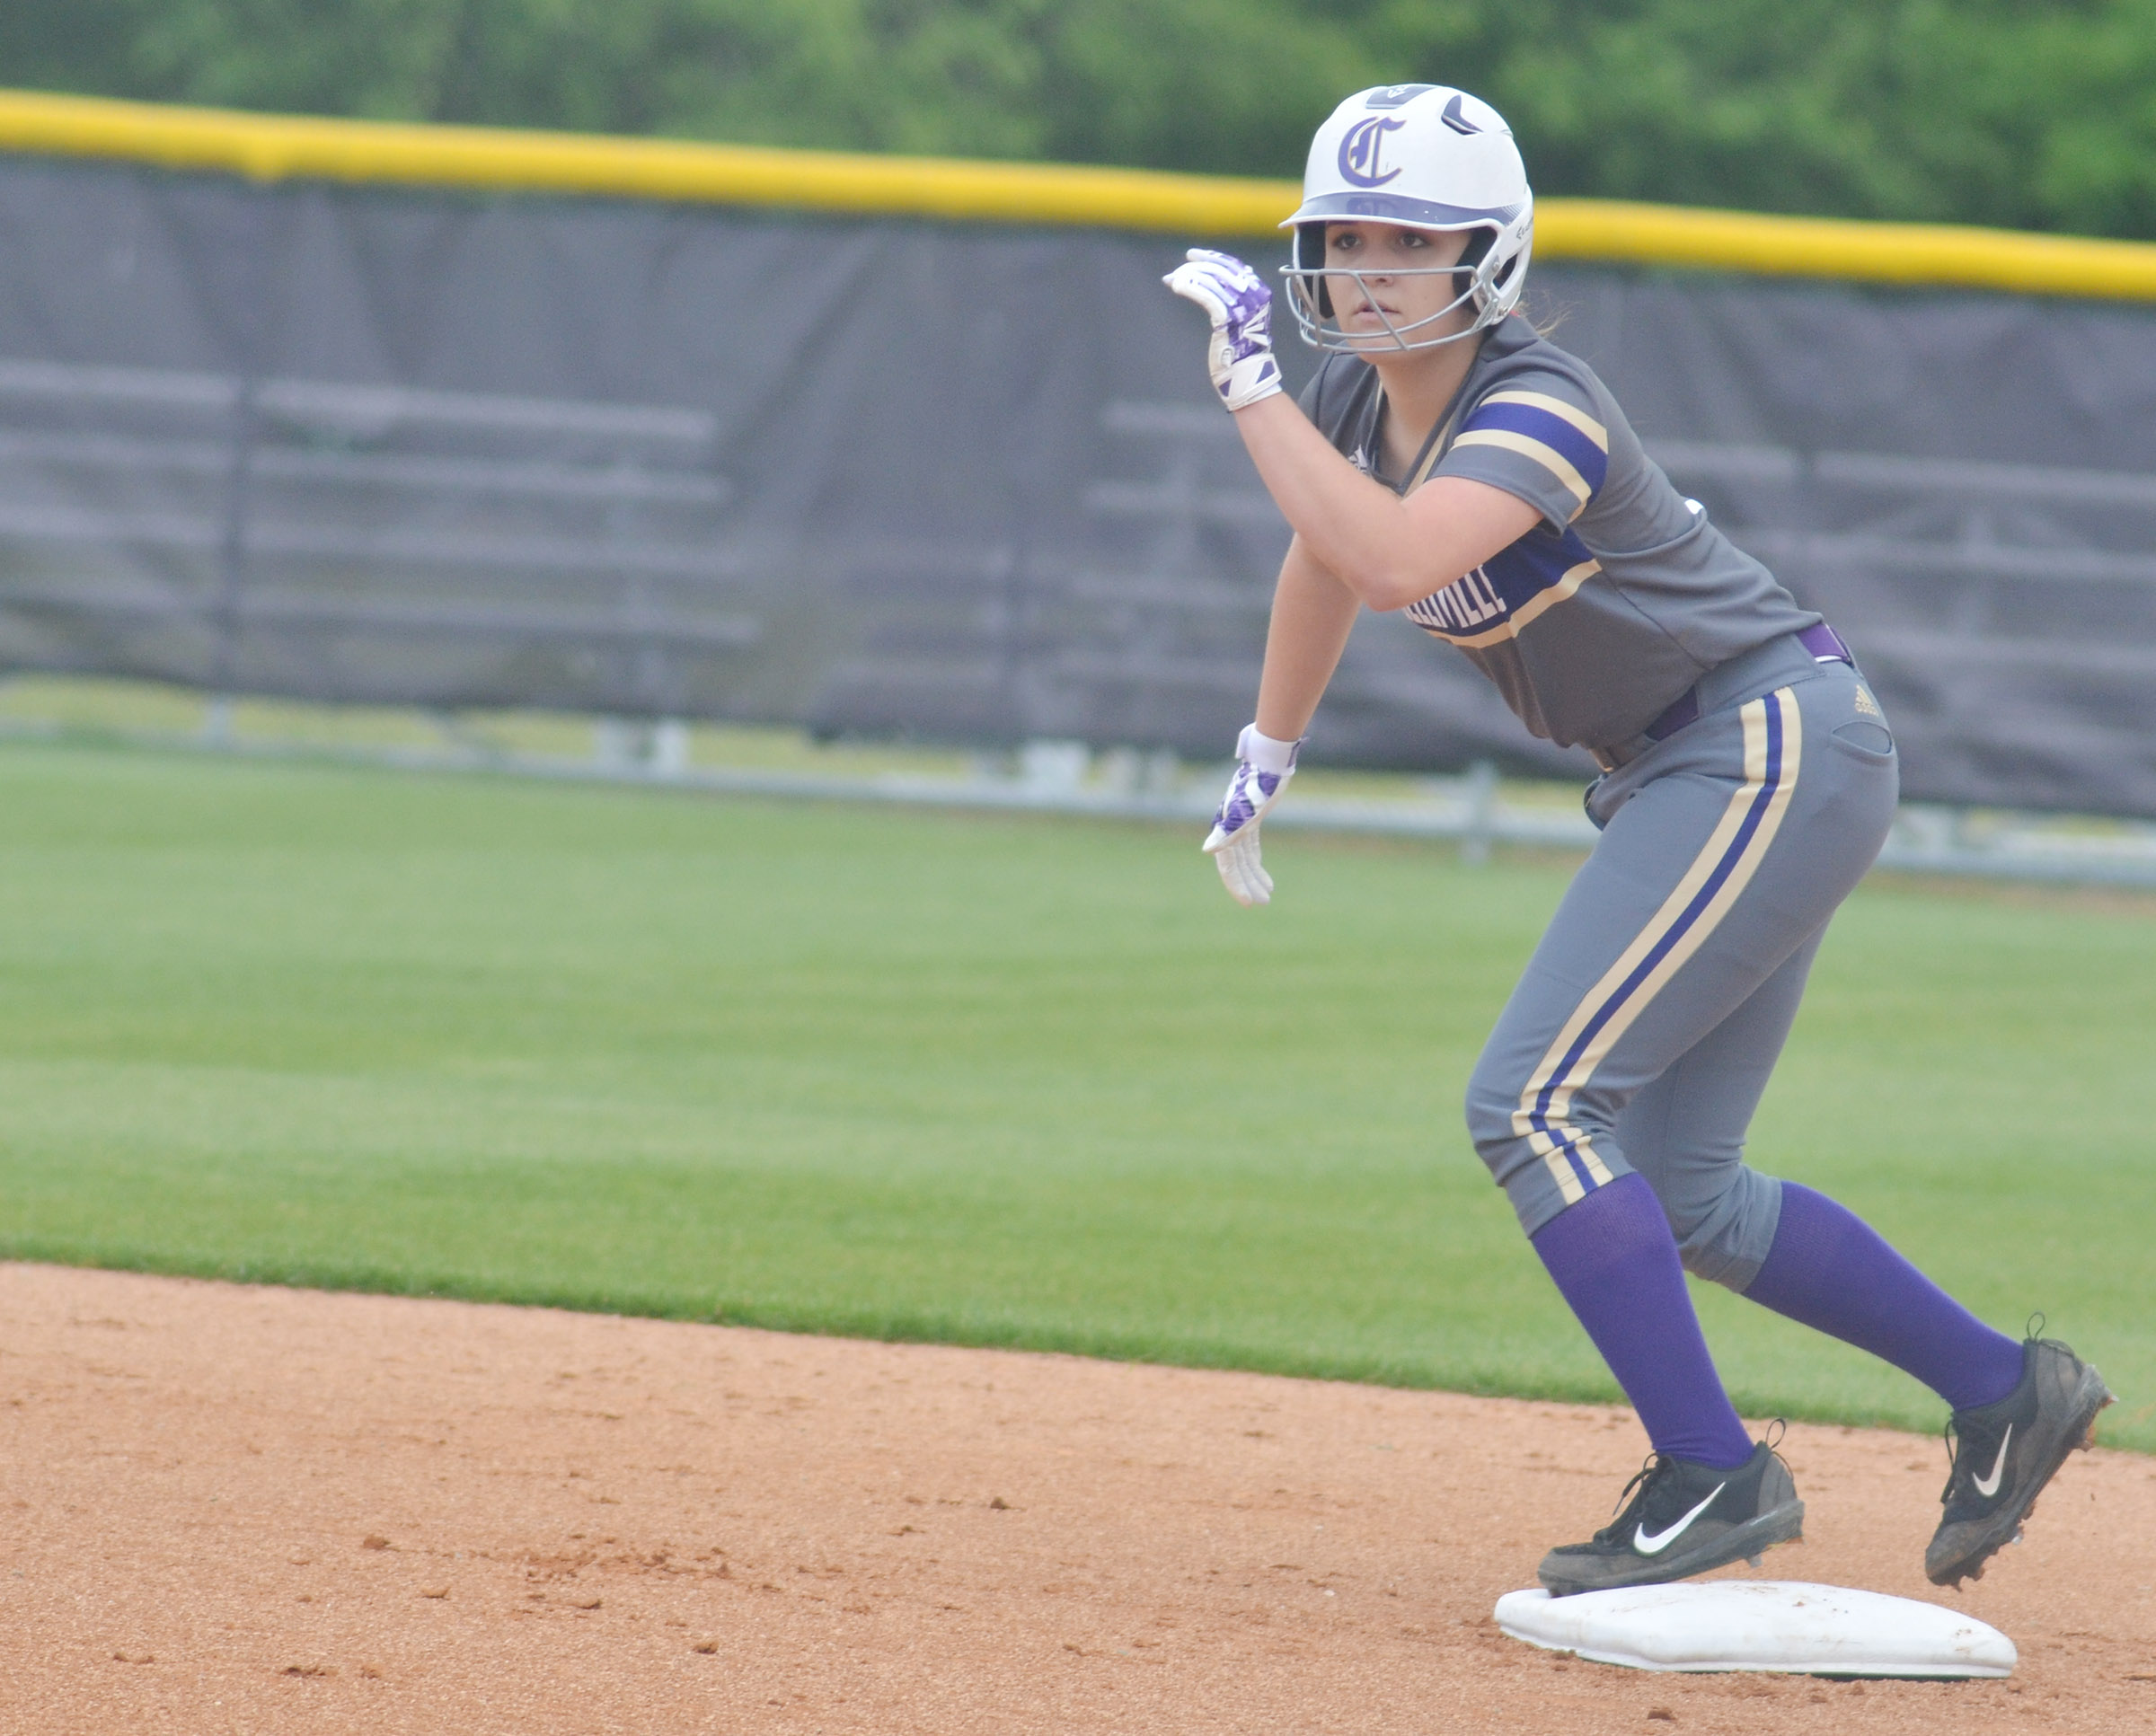 Campbellsville Middle School eighth-grader Kenzi Forbis looks to run to third.